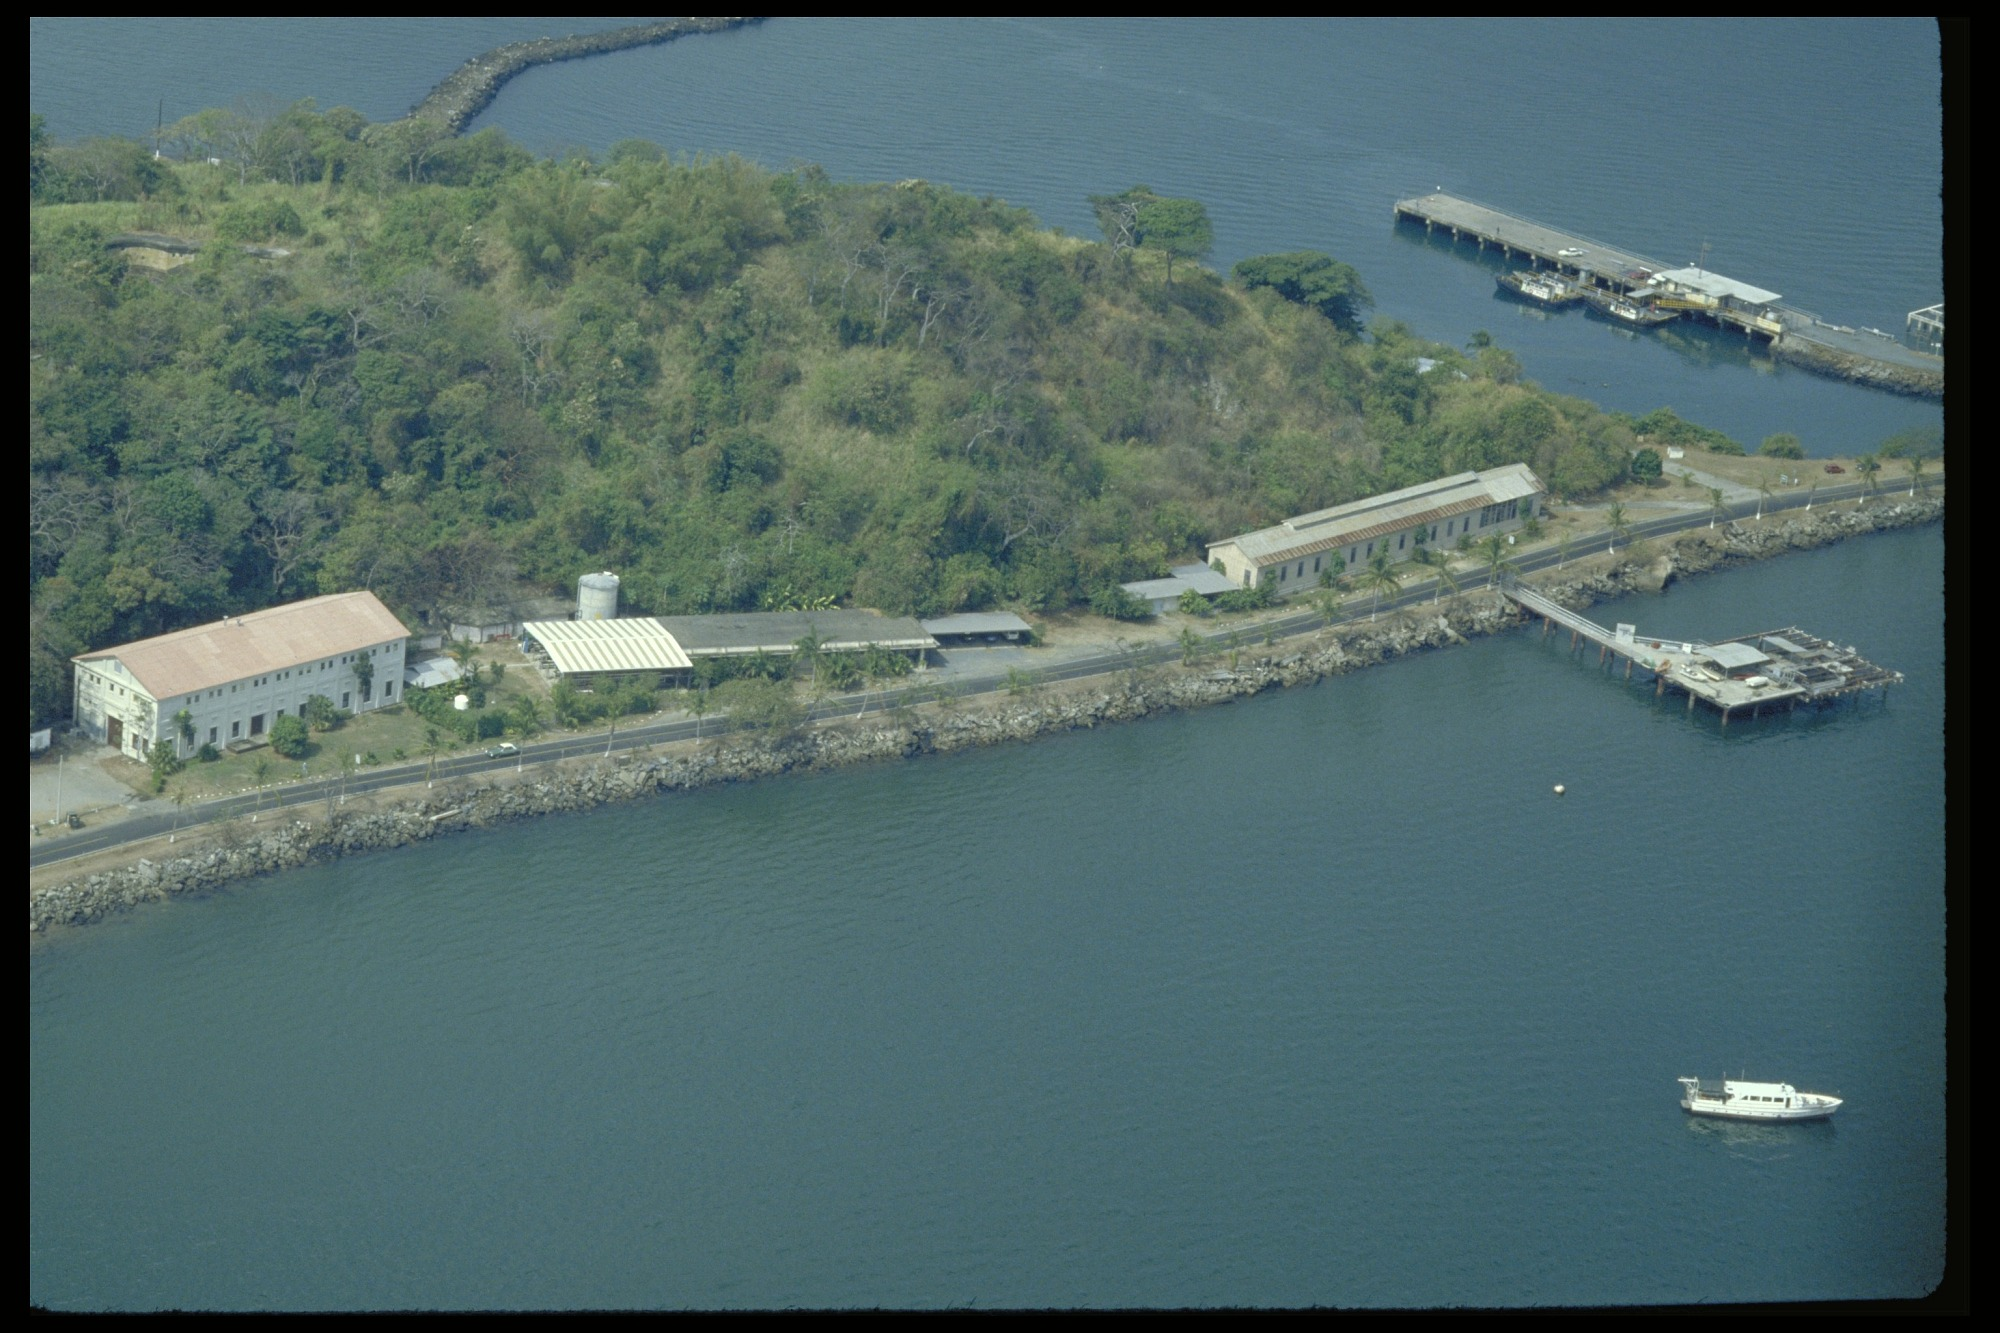 Preview of Aerial View of Naos, Panama, STRI